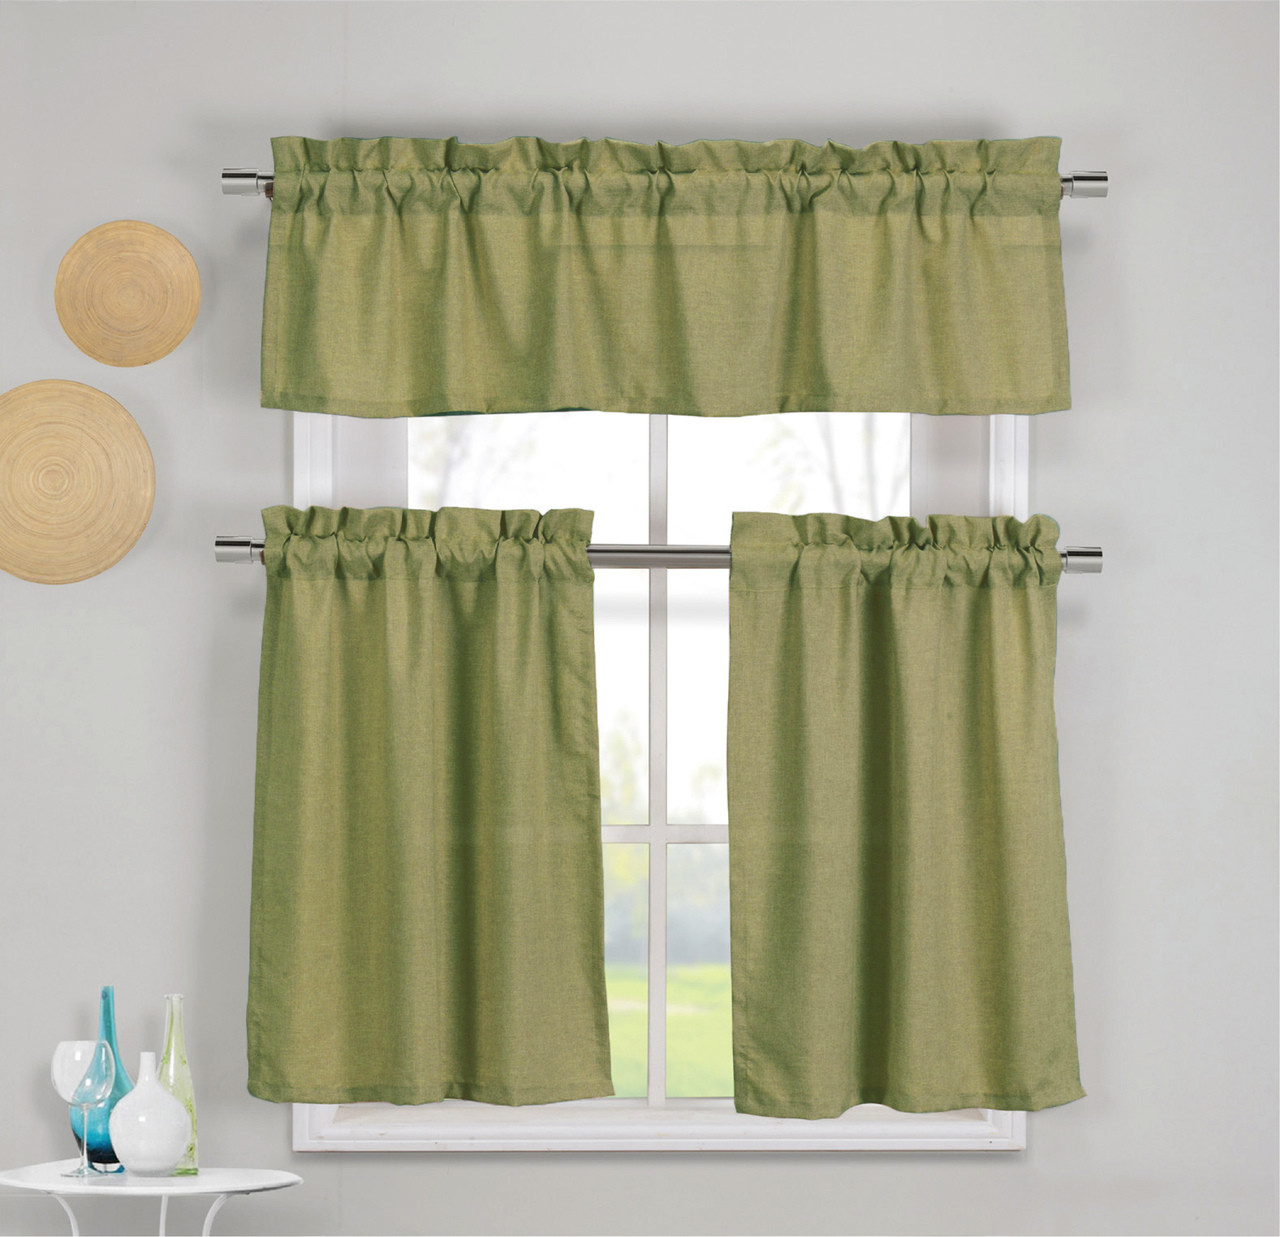 3 piece faux cotton moss green kitchen window curtain panel set with